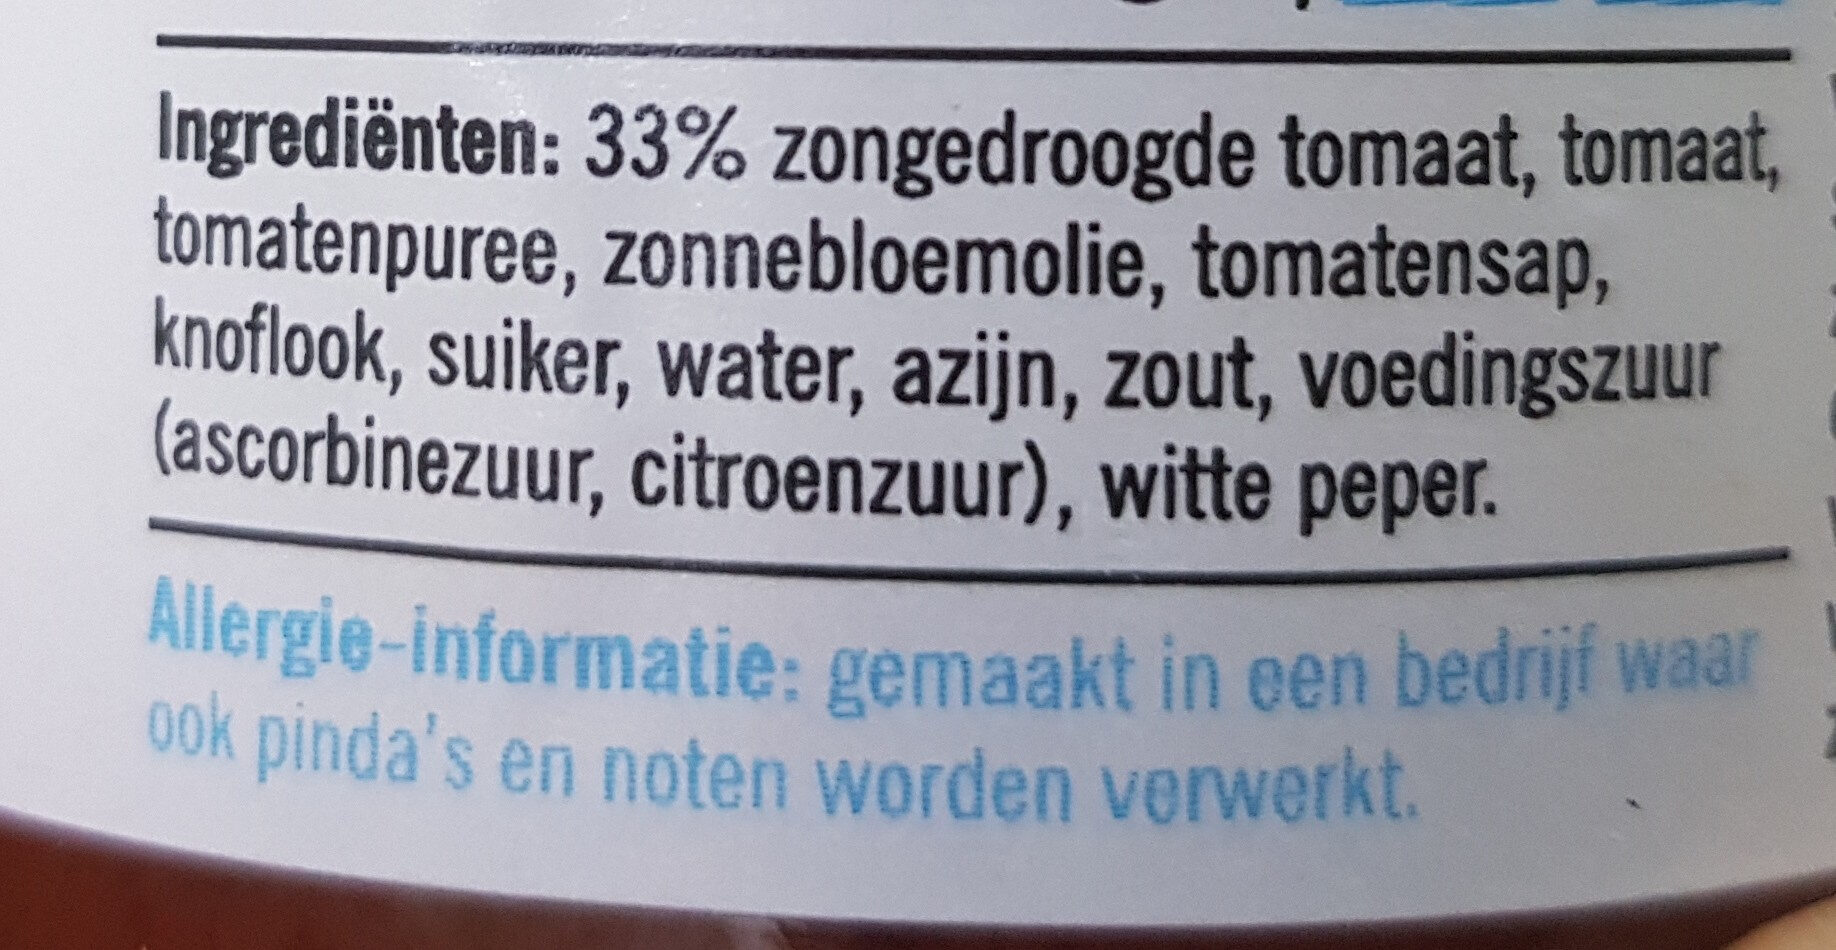 Tapenade tomaat zongedroogd - Ingredients - nl